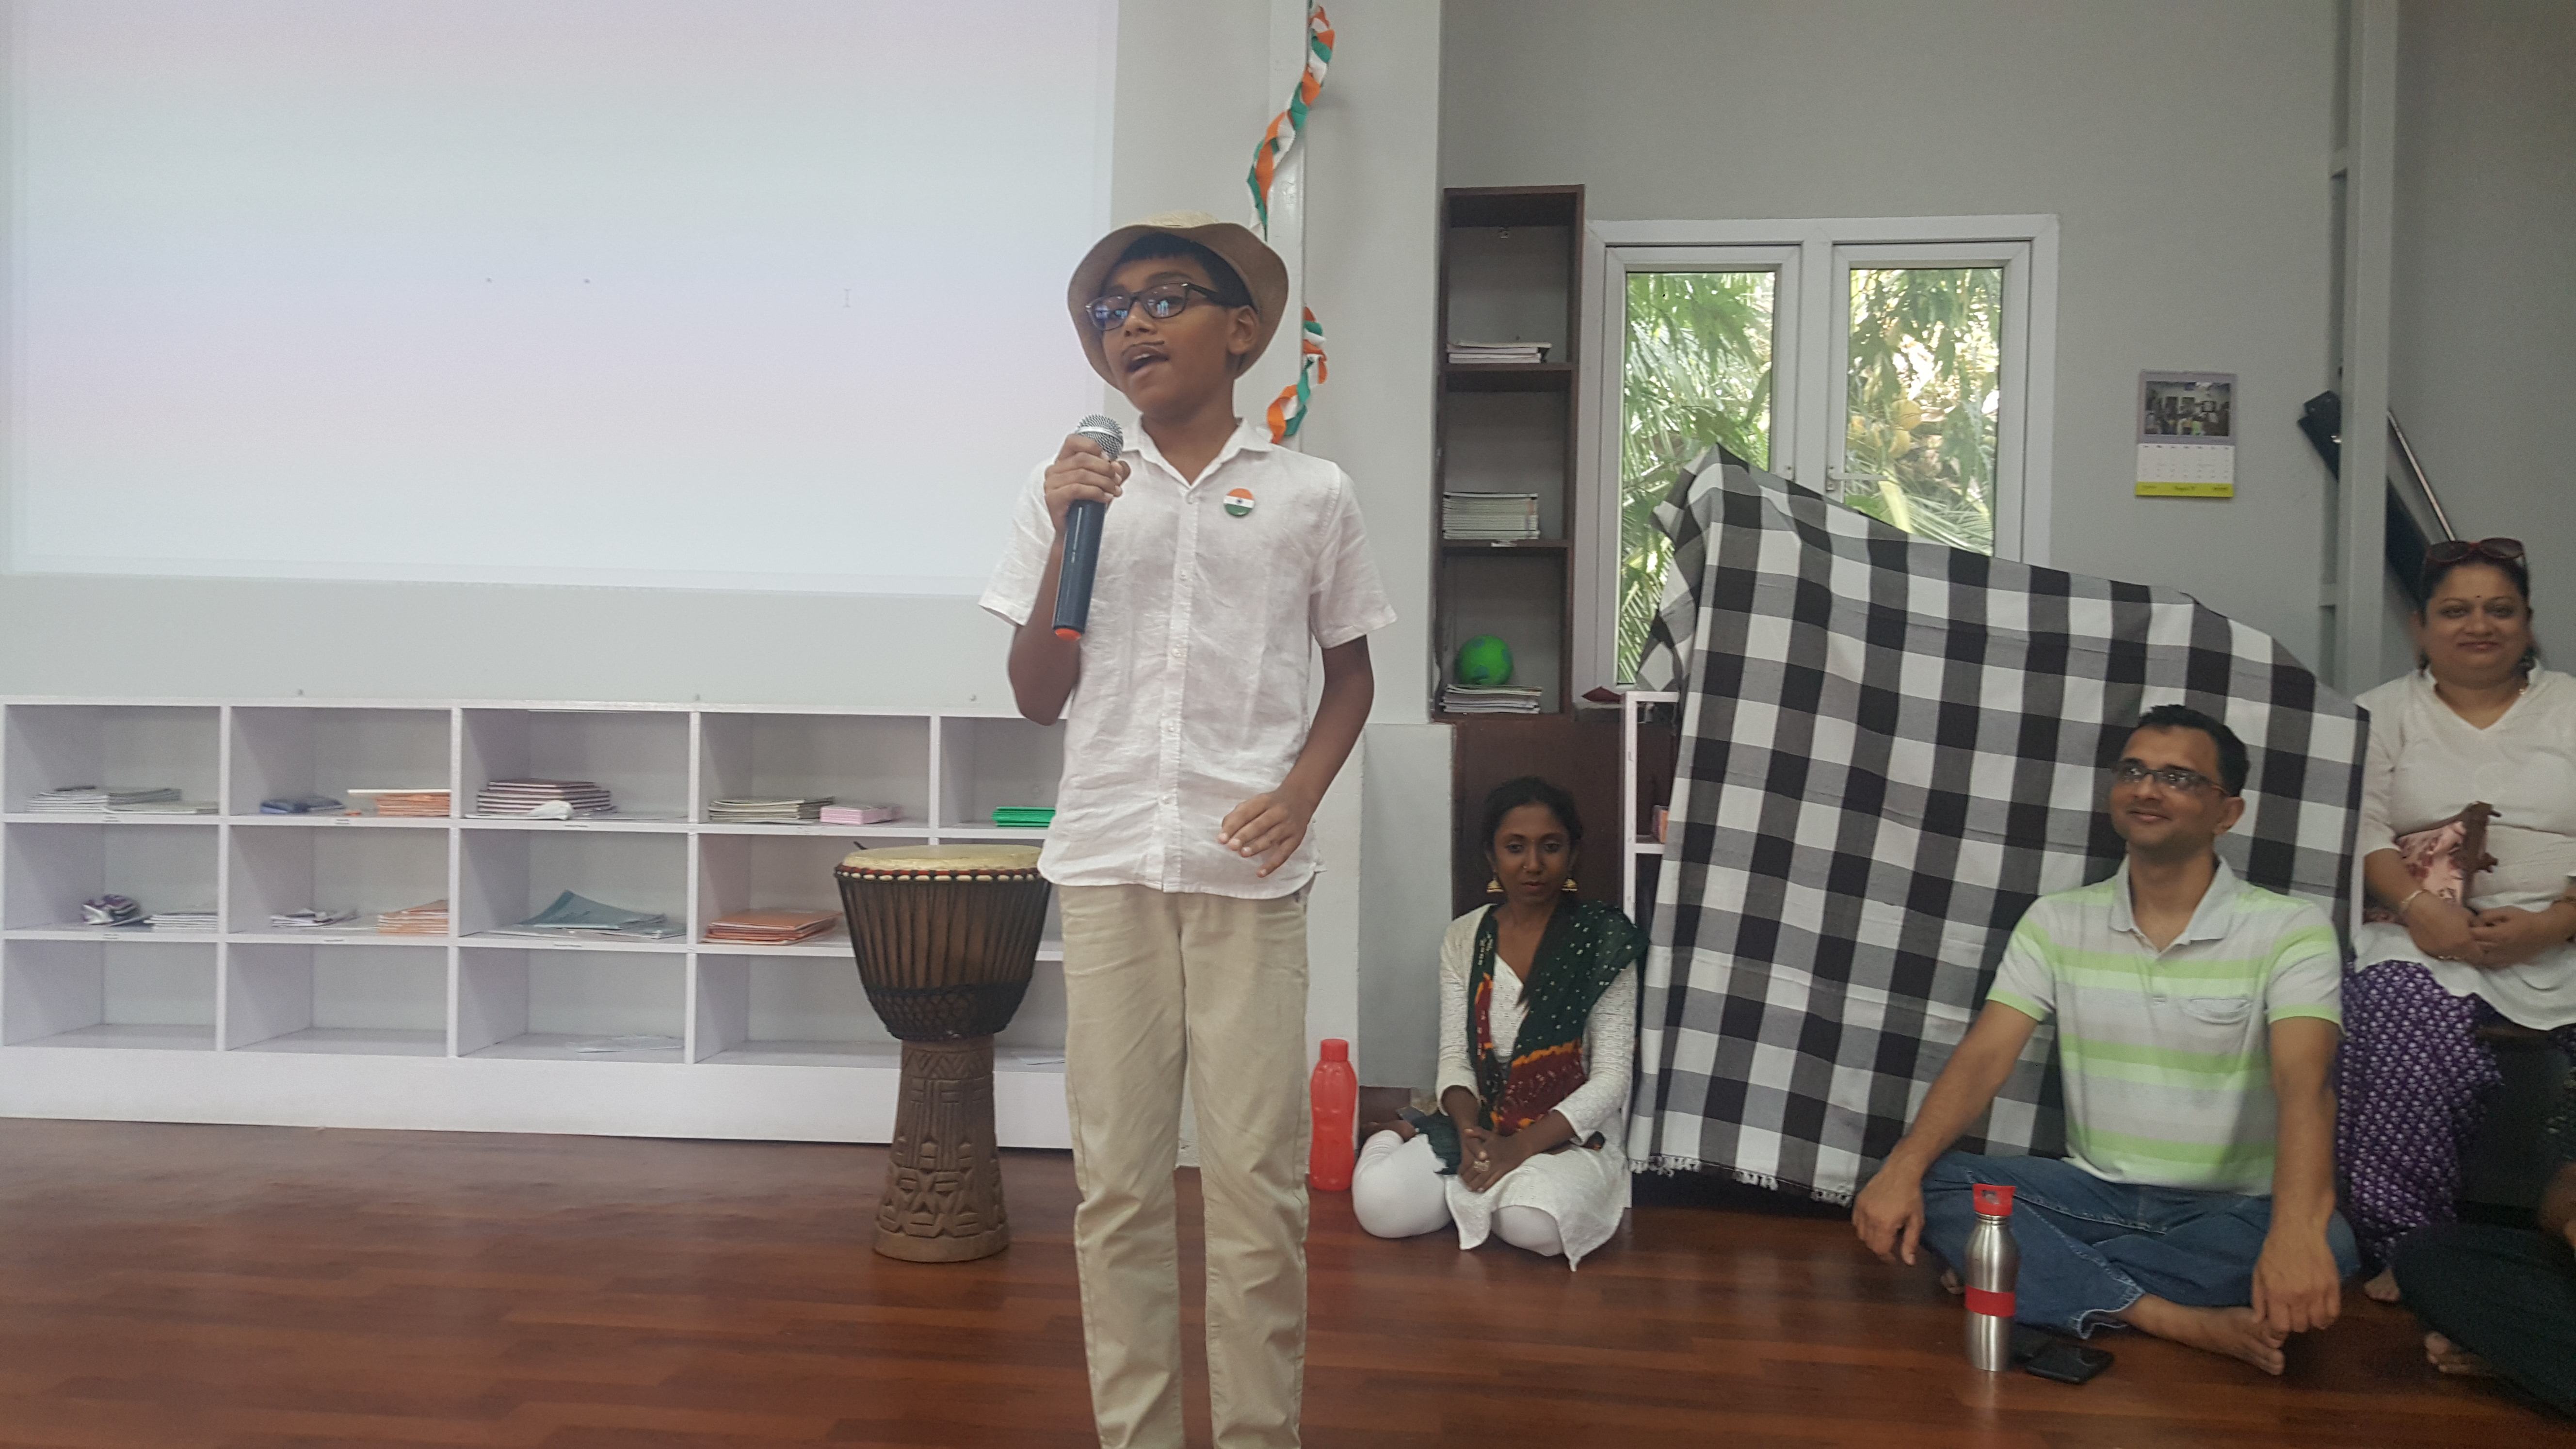 Aaroush enacting the role of Bhagat Sing